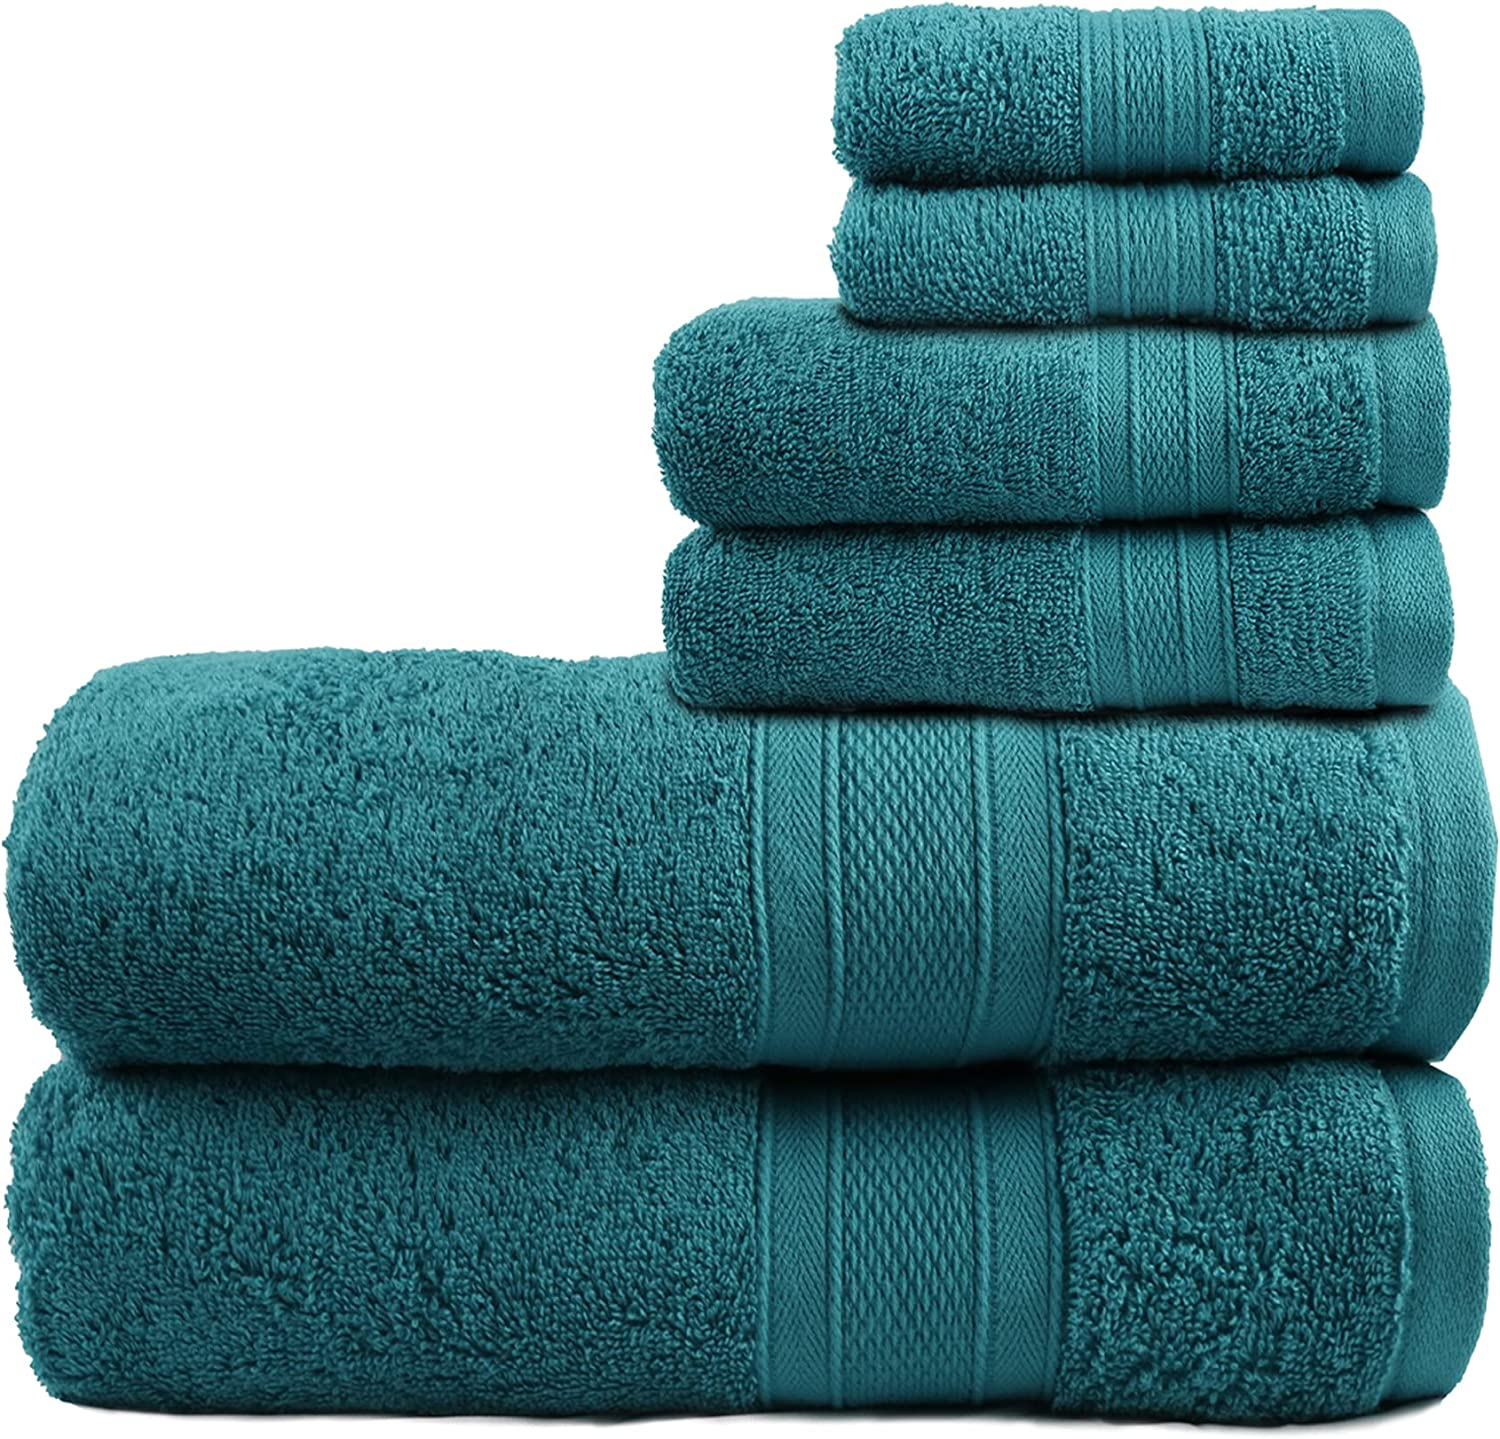 TRIDENT Feather Touch, Ultra Soft, Super Absorbent 100% Cotton 6 Piece Towel Set -2 Bath, 2 Hand, 2 Washcloths Easy Care (Teal, 6 Piece Set)